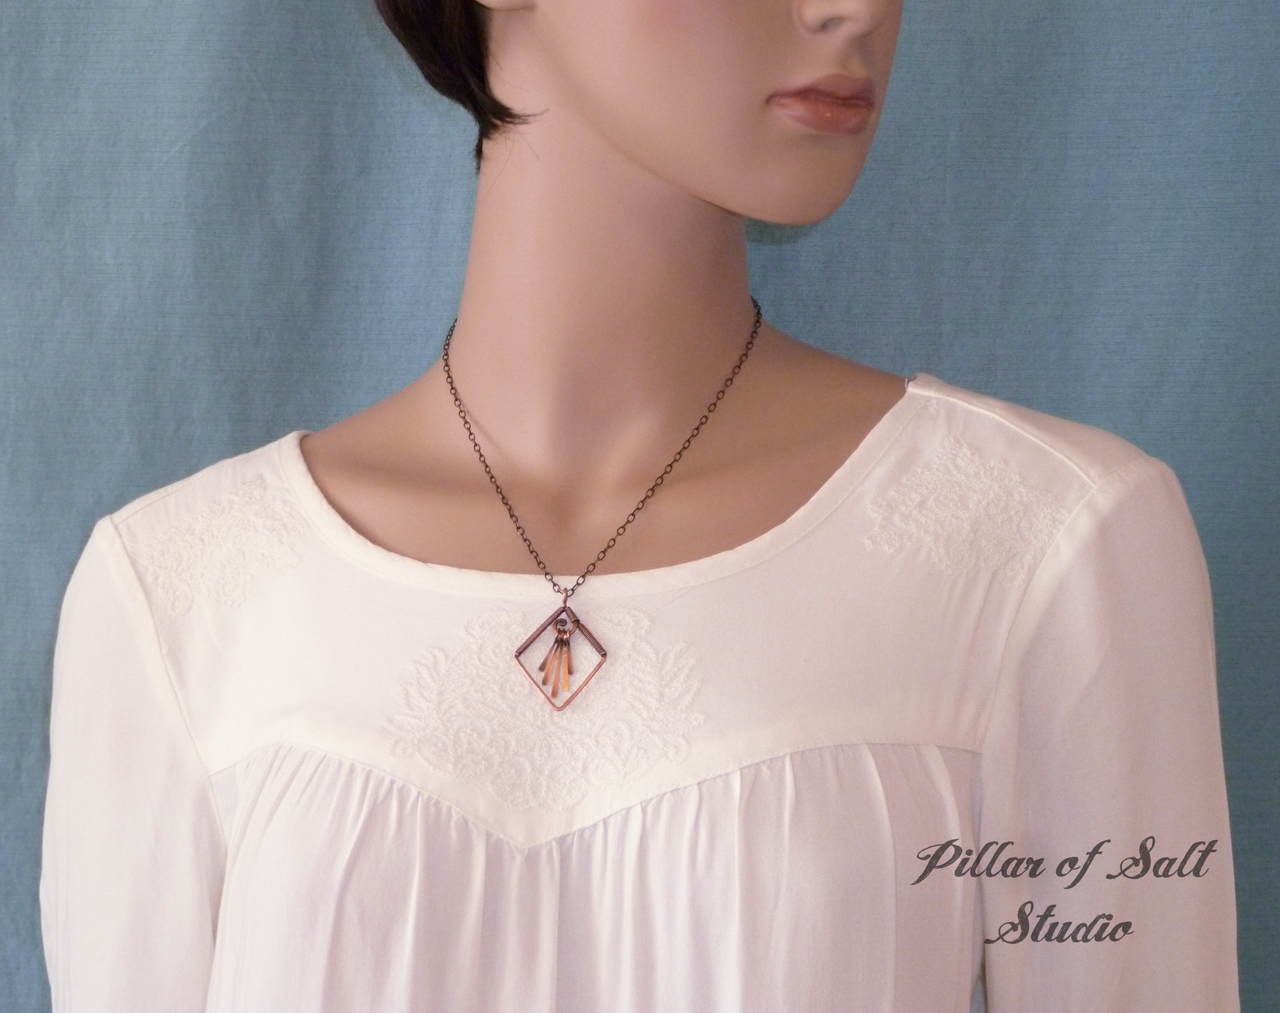 Copper wire wrapped pendant necklace / jewelry by Pillar of Salt Studio